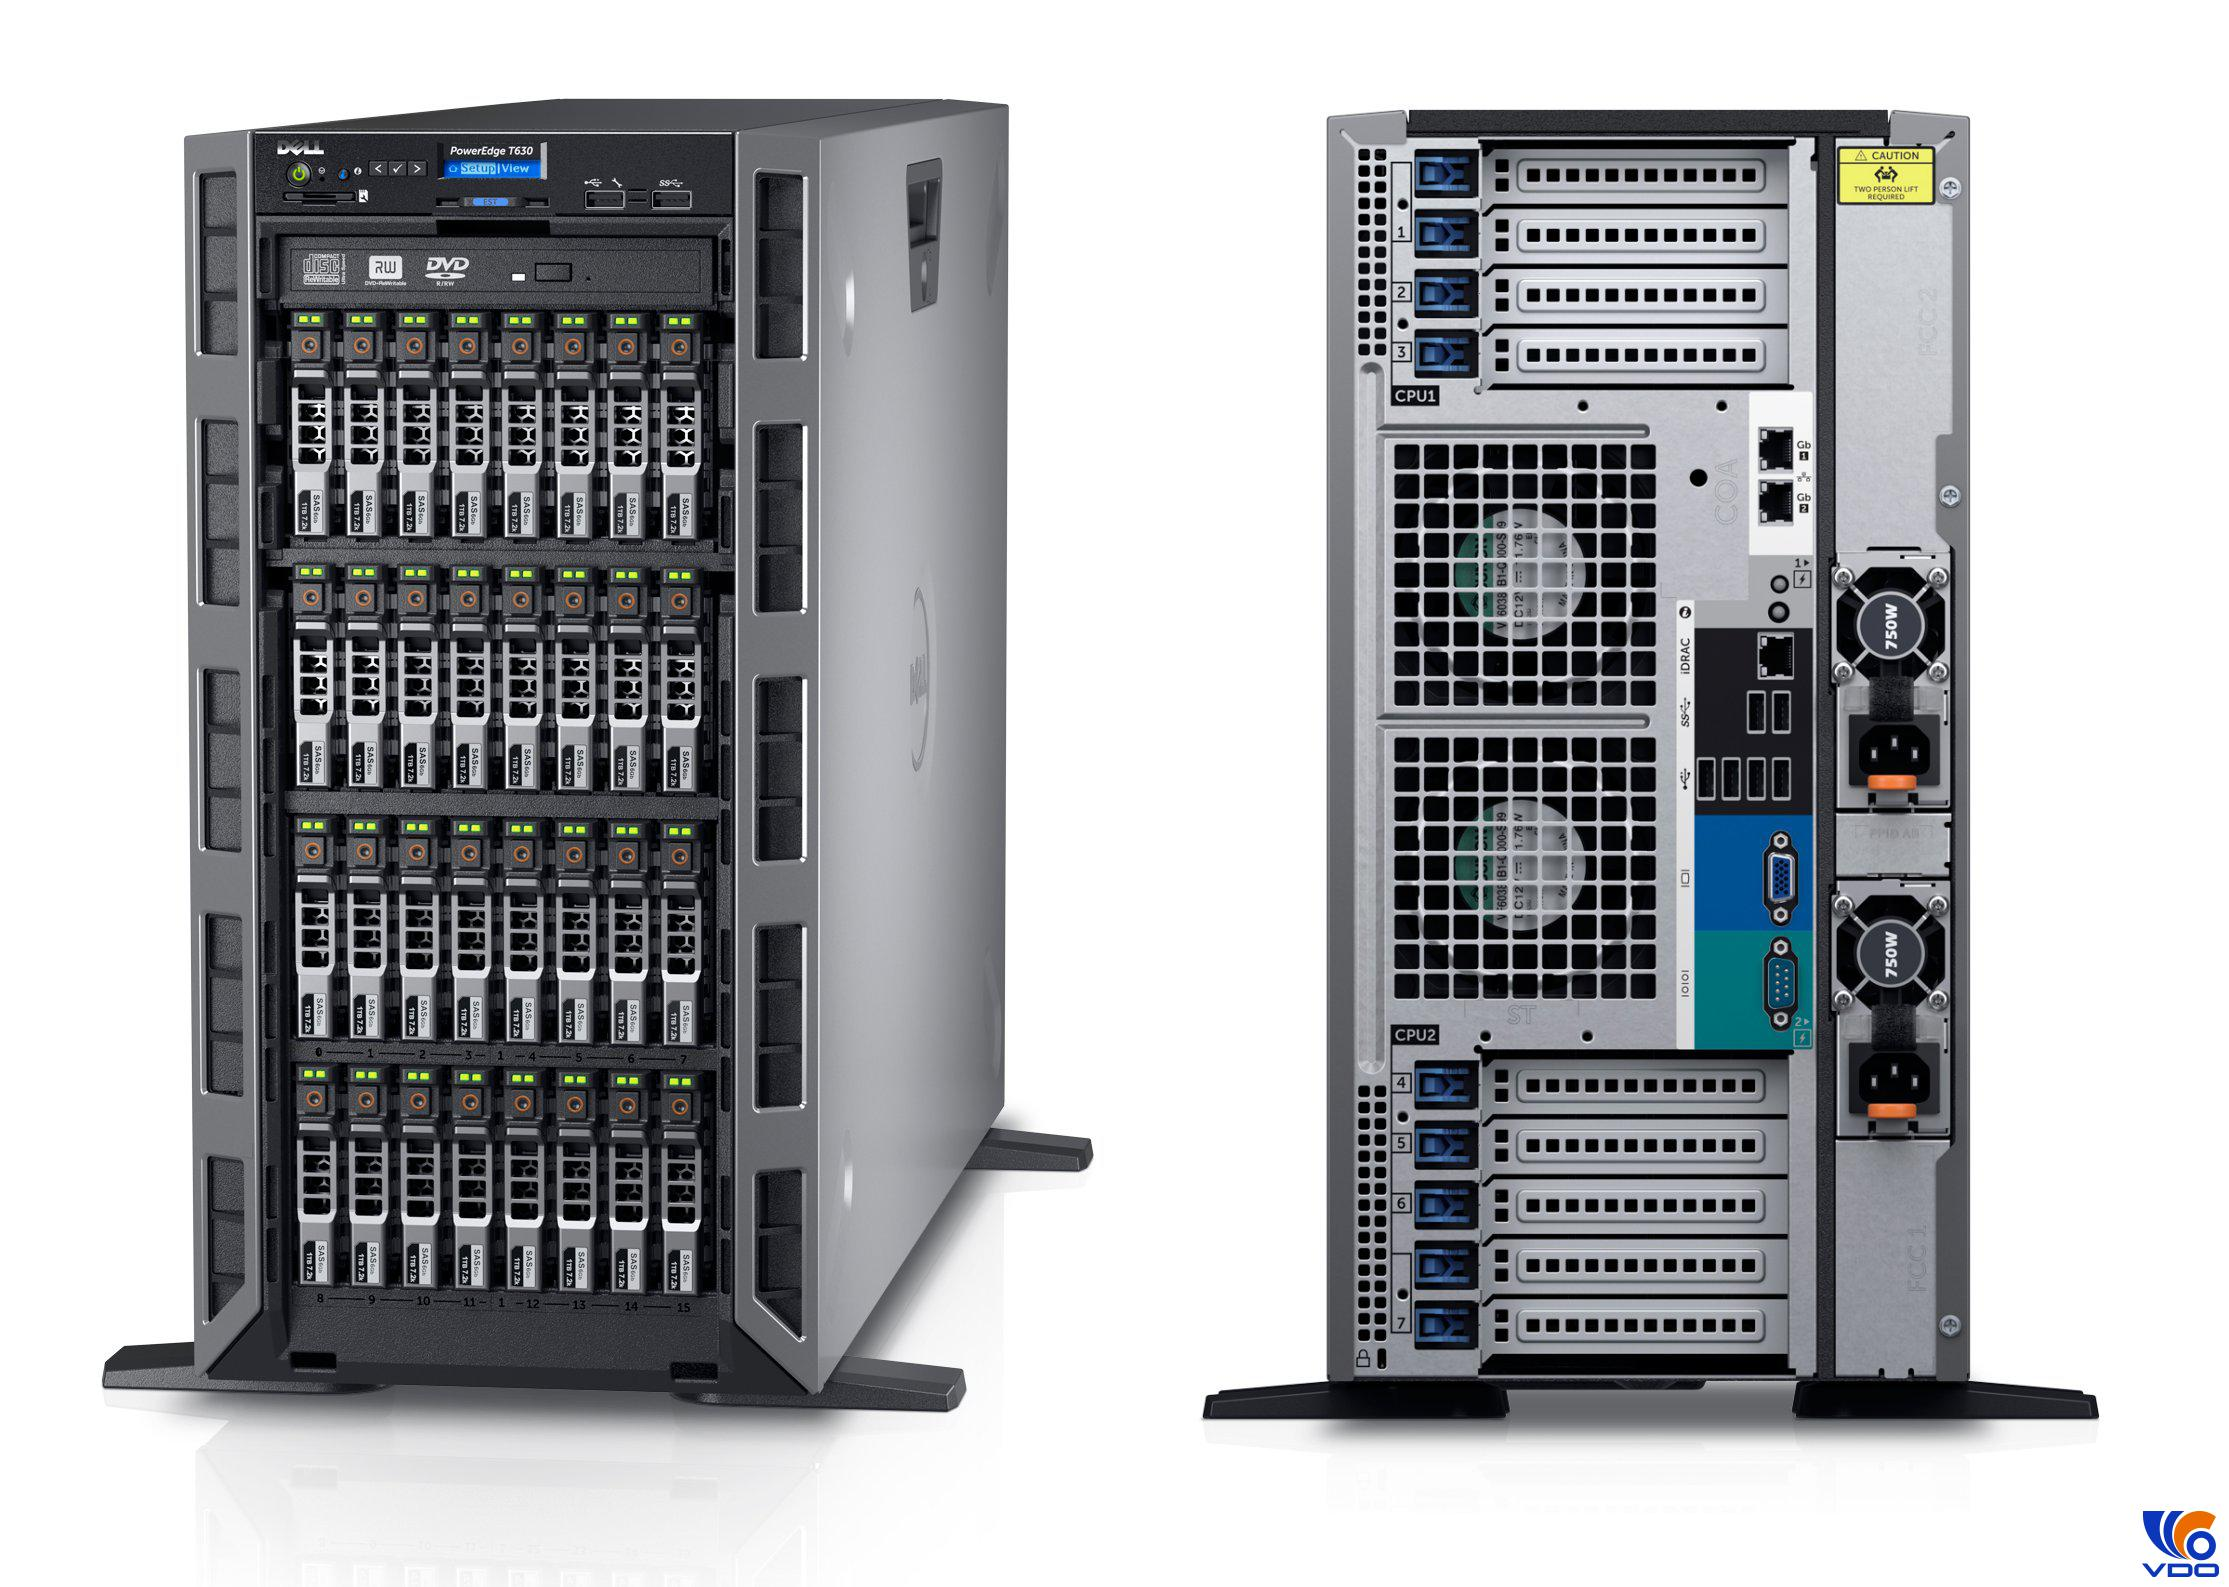 Máy chủ Dell EMC Poweredge T30